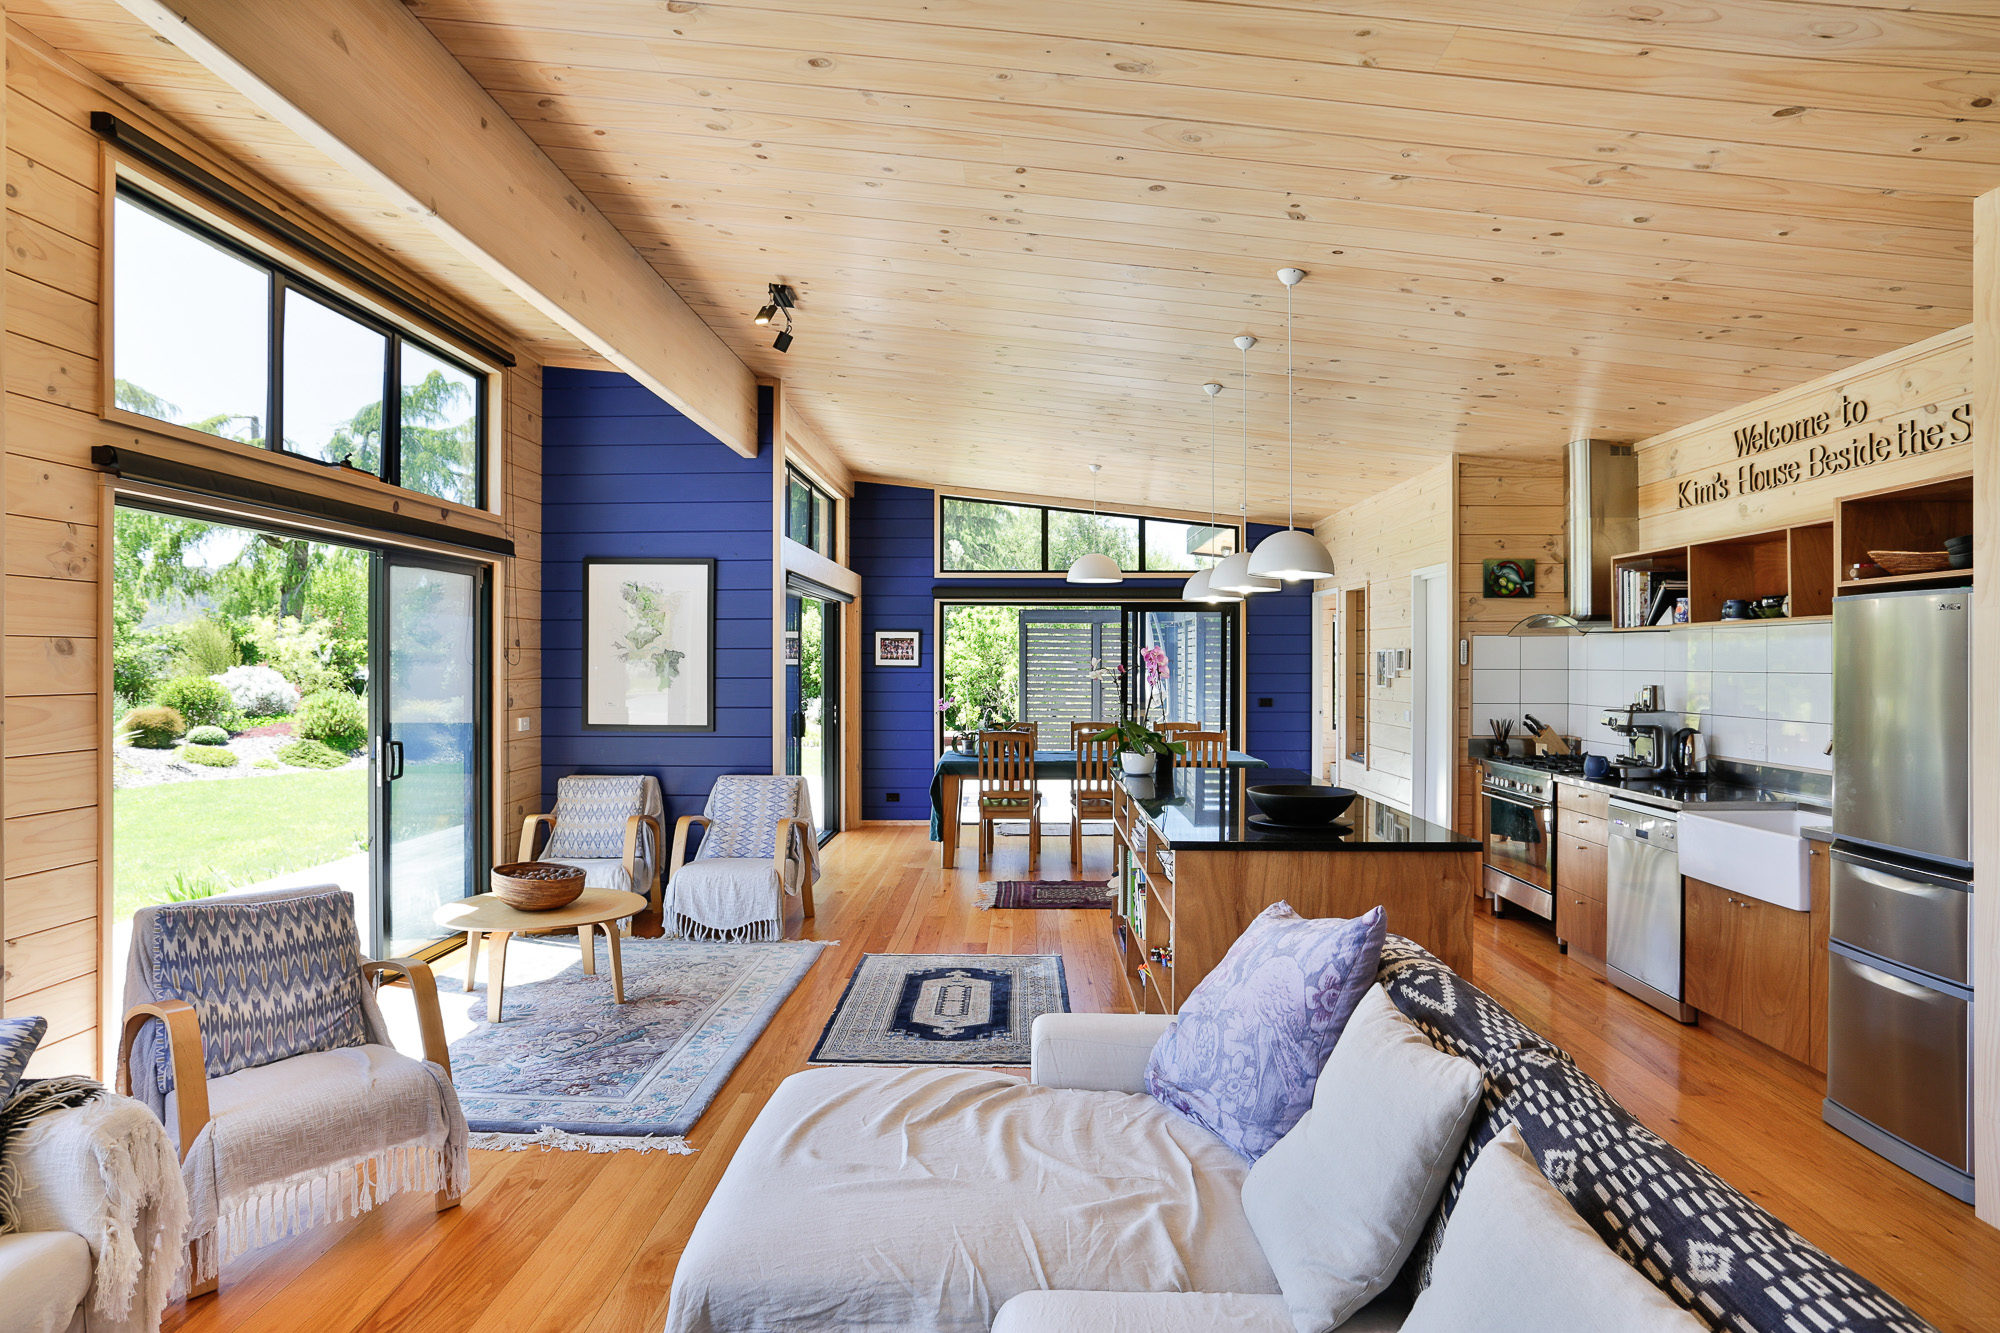 Lockwood holiday home in Nelson with painted feature walls